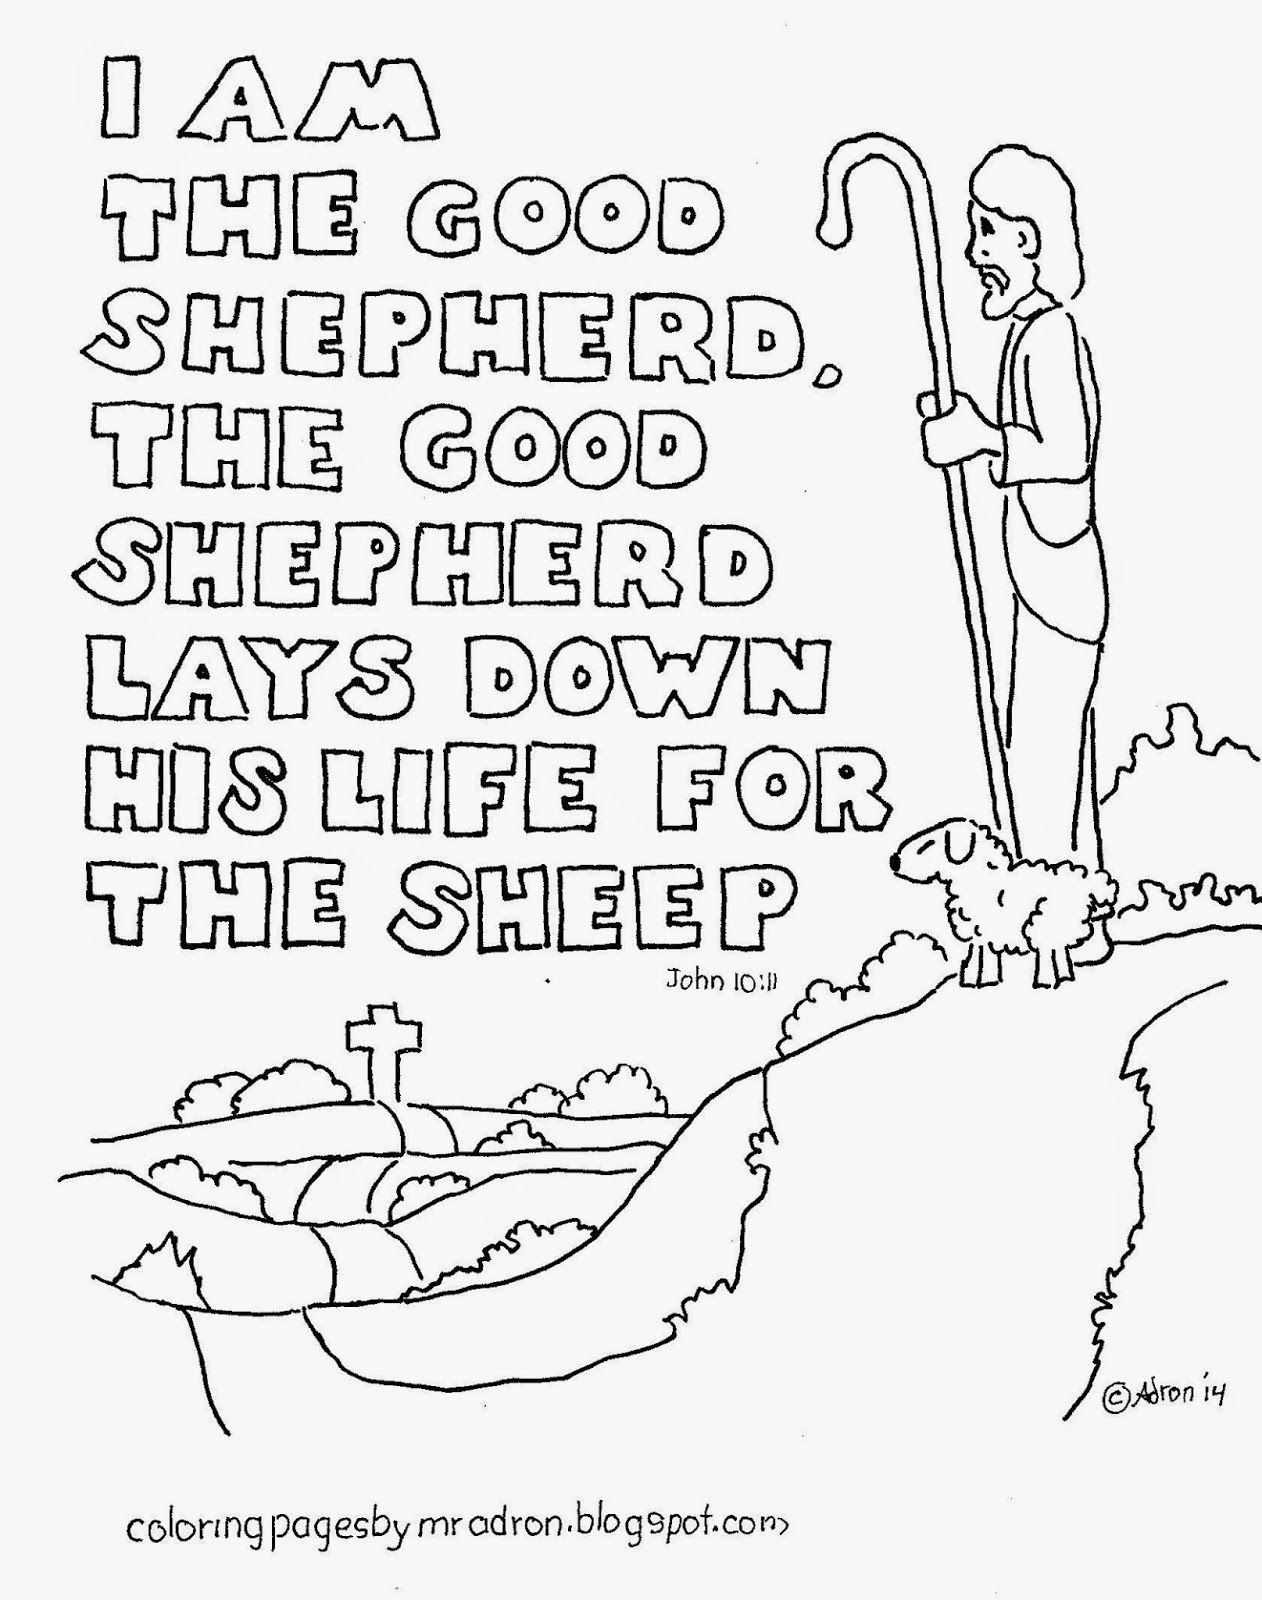 I Am The Good Shepherd, Free Bible Verse Coloring page